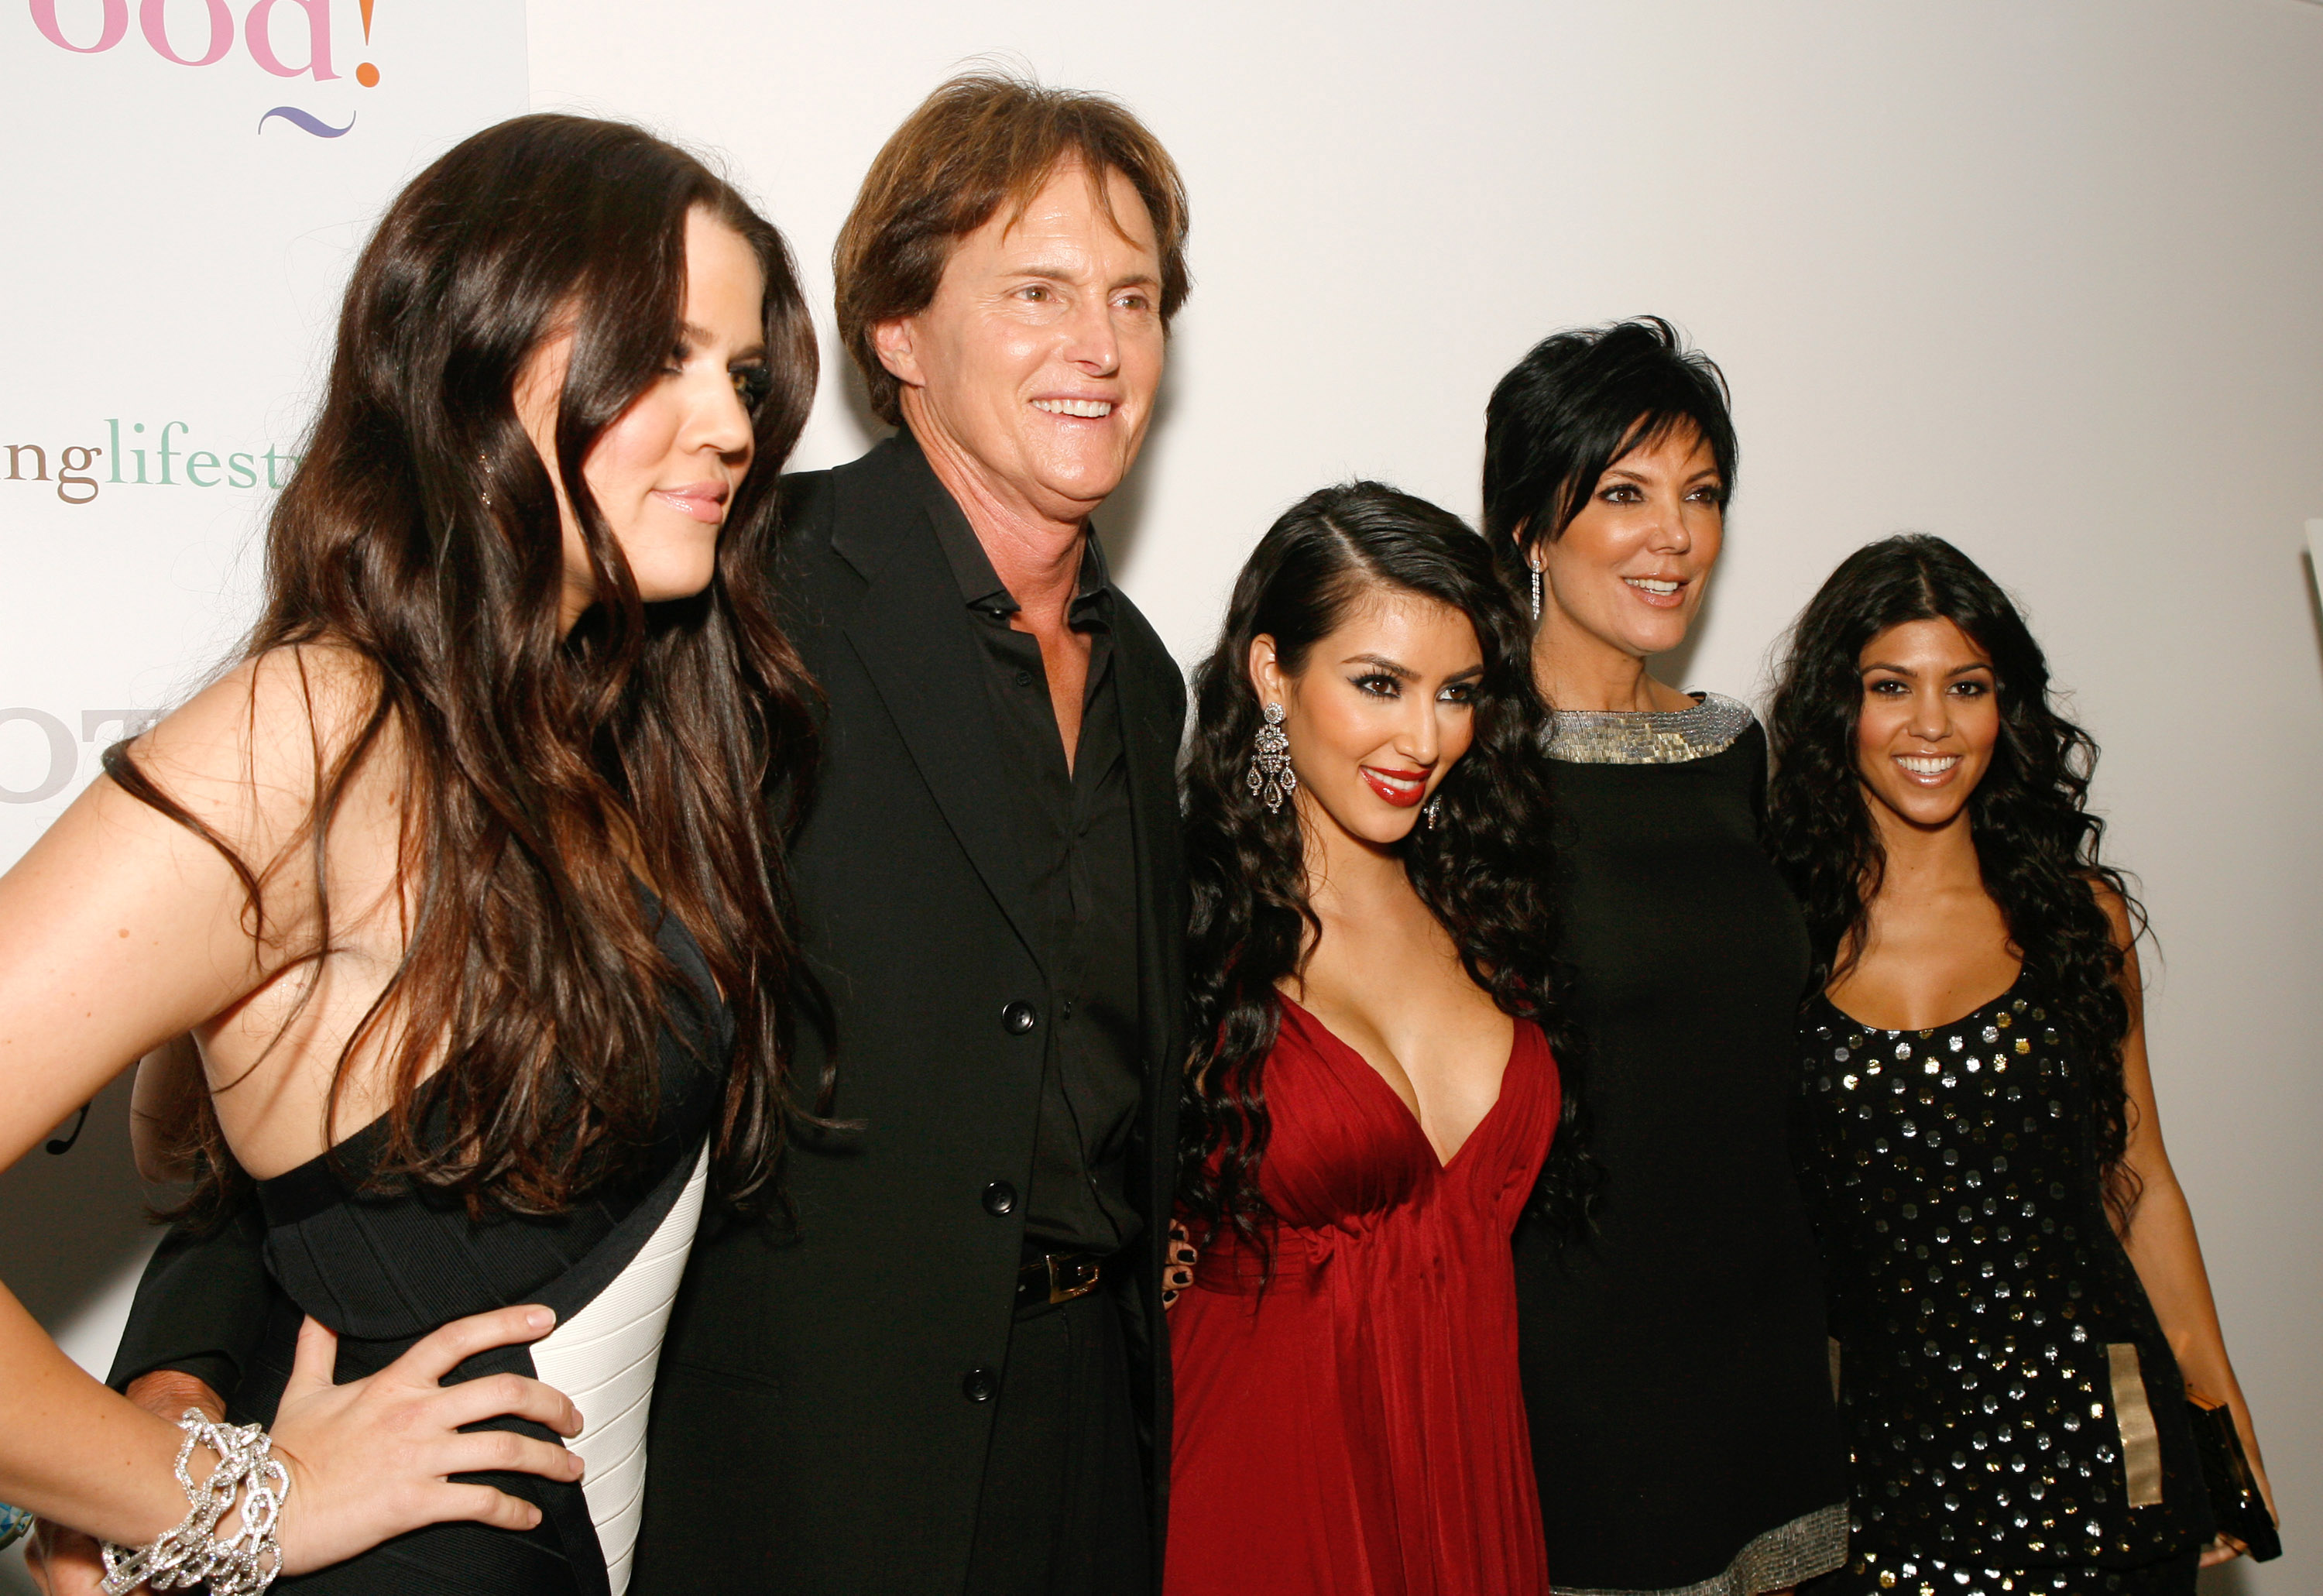 Keeping Up With The Kardashians Premiere Party